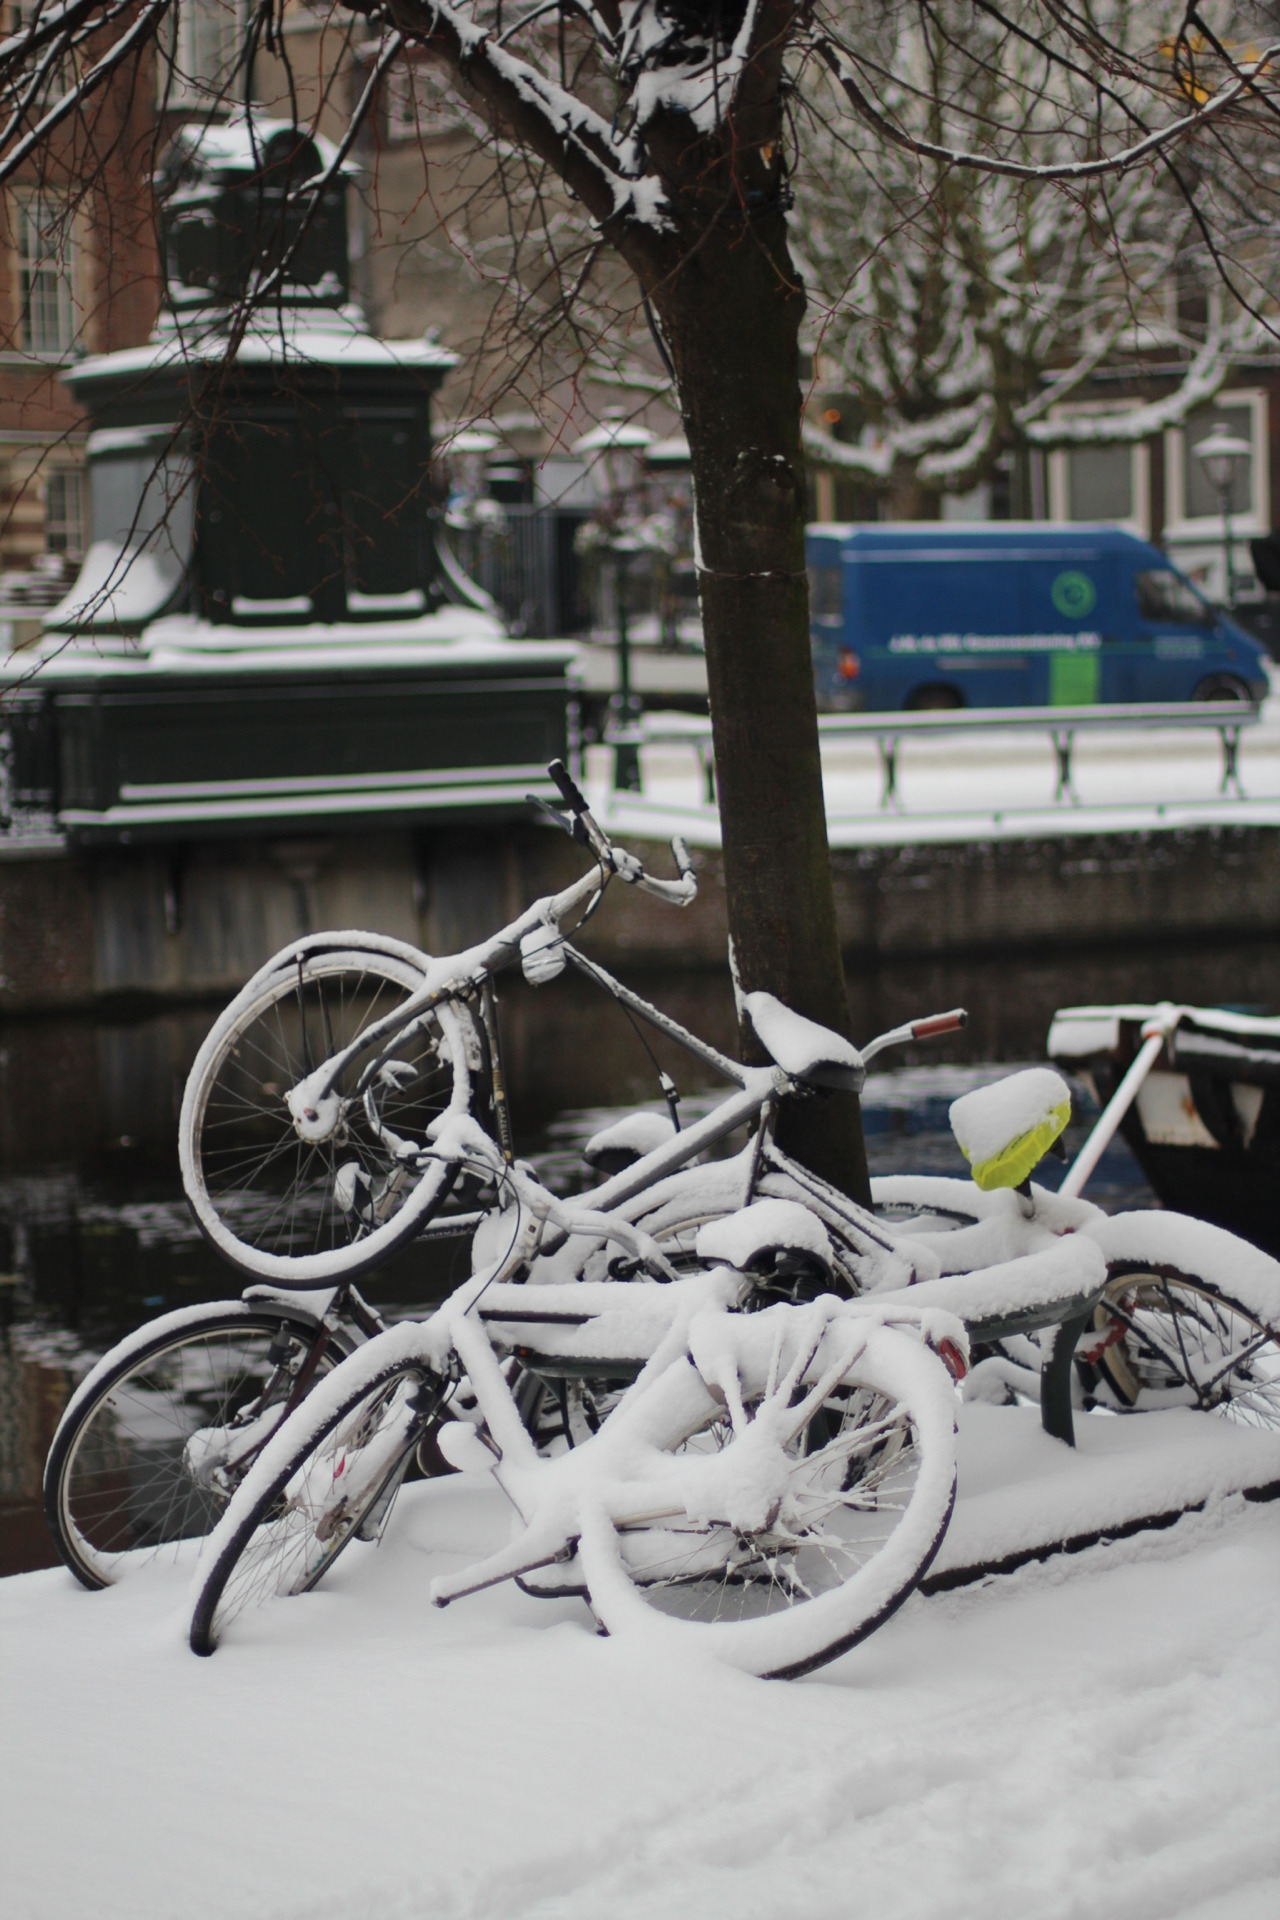 Winter has finally come to Leiden